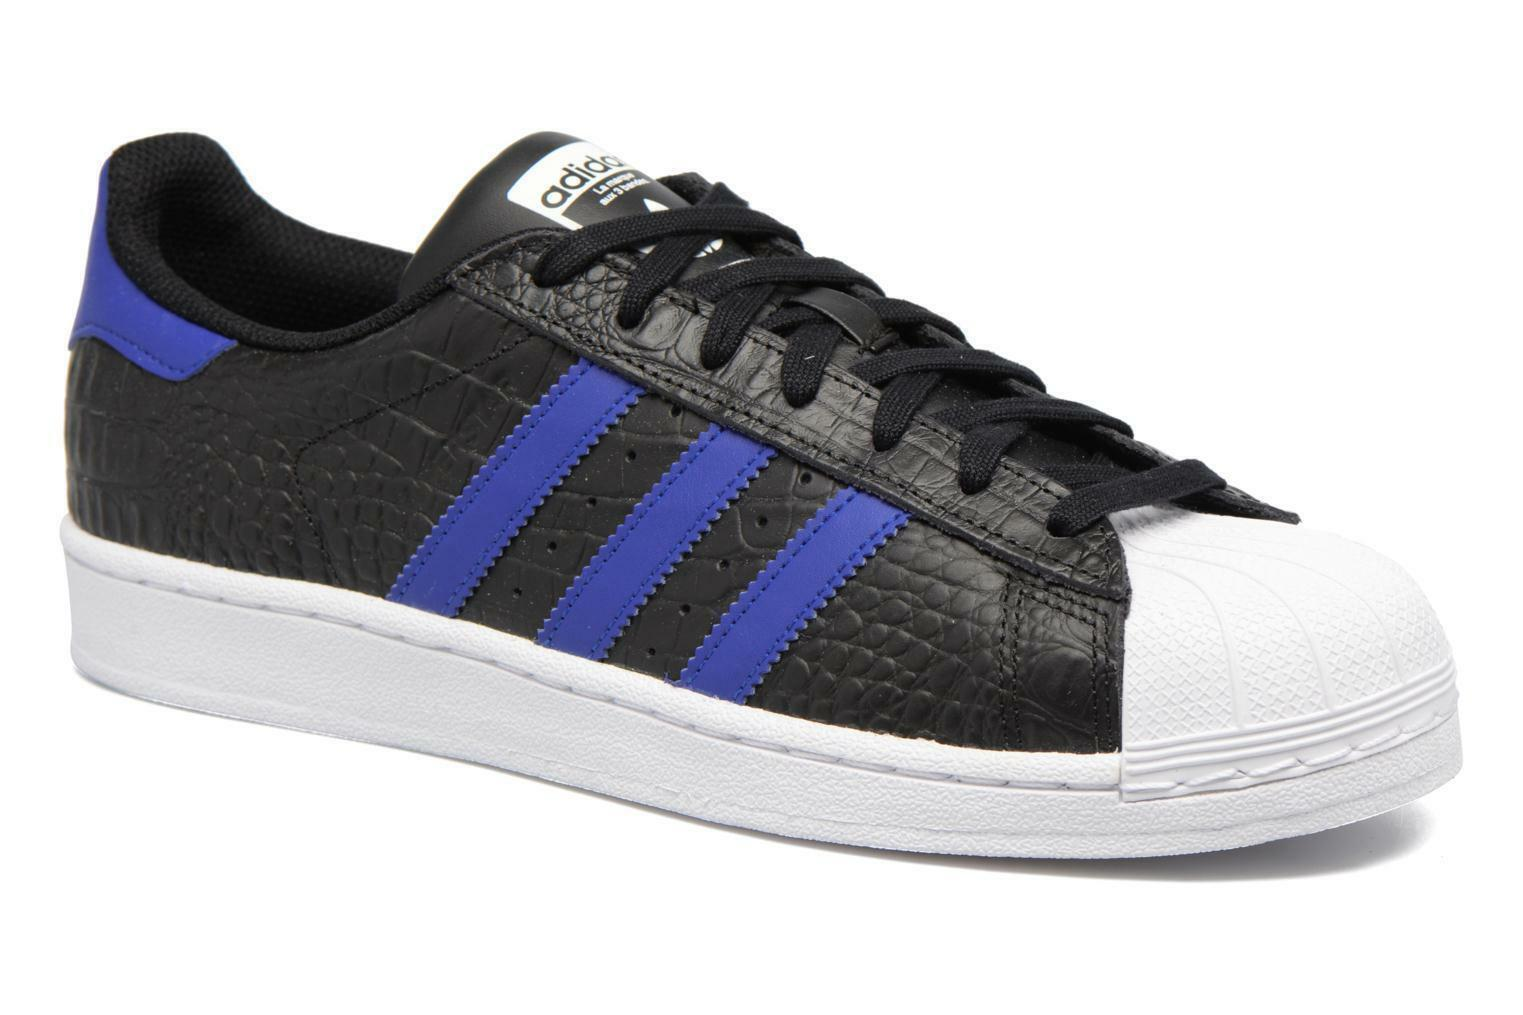 Adidas Superstar Shoes (1960s): 4 listings